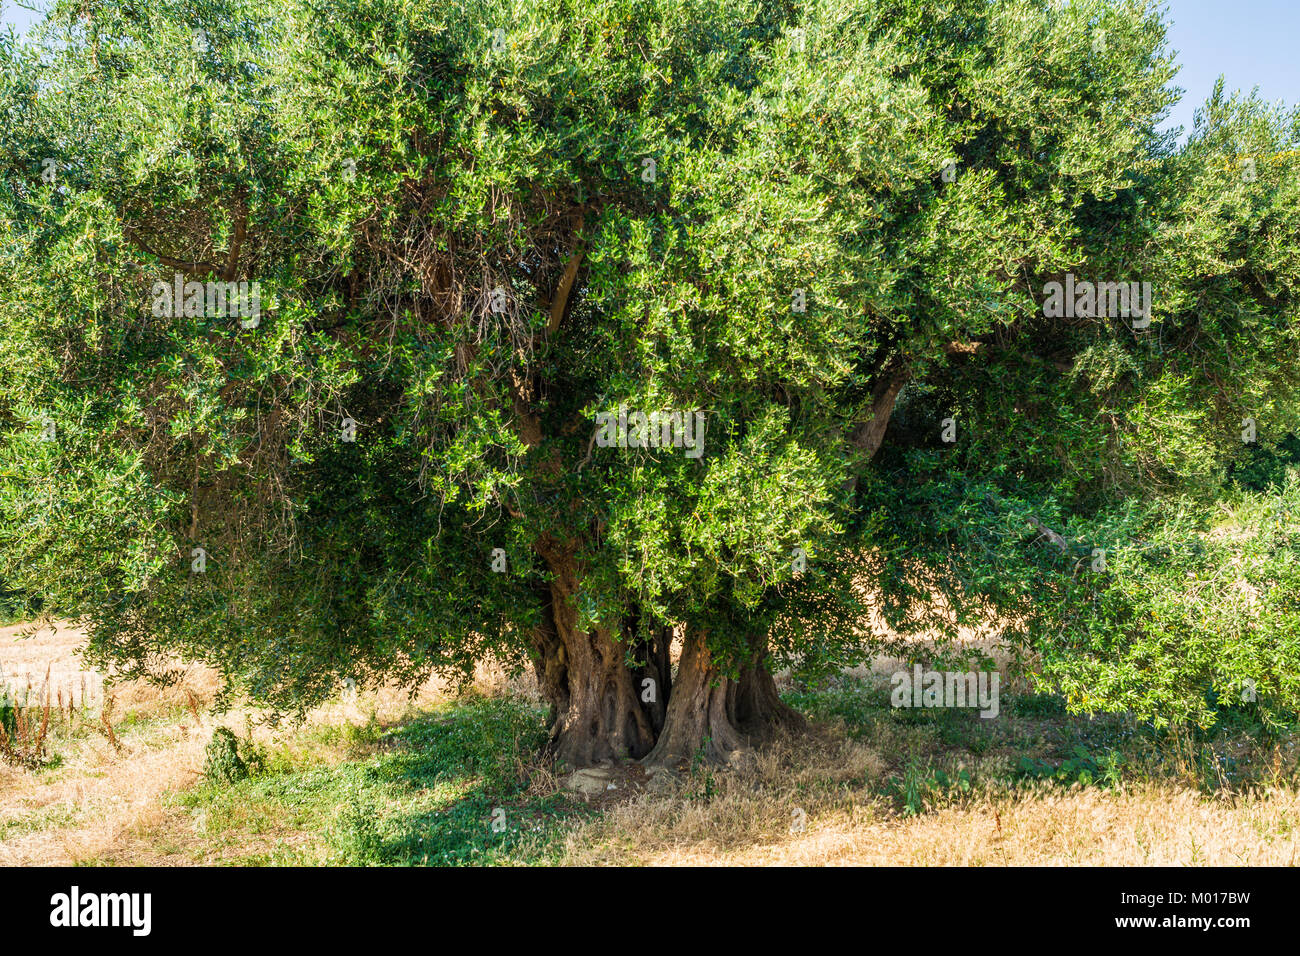 Secular Olive Tree with large an d textured trunk in a field of olive trees in Italy, Marche - Stock Image